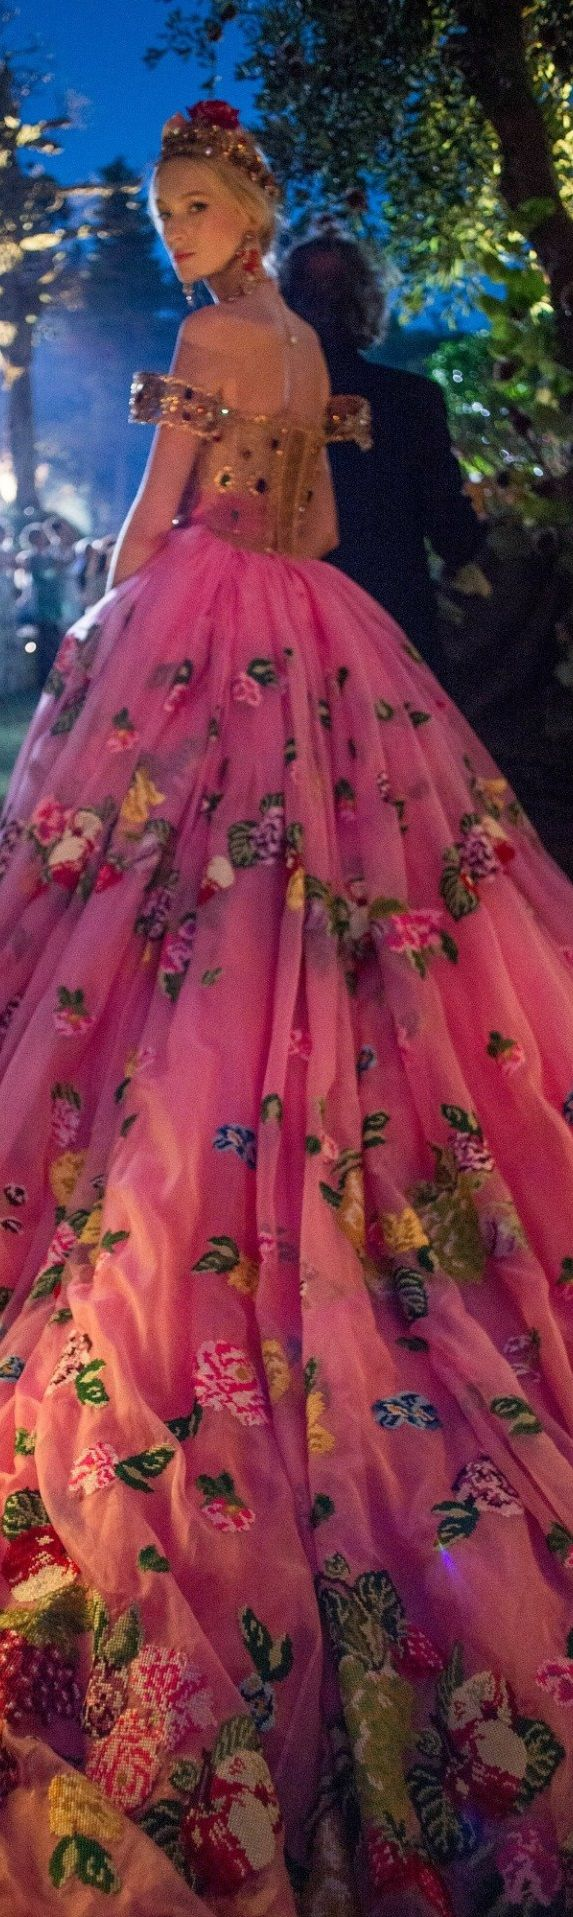 Rainie saved -Dolce&Gabbana Alta Moda Fall 2015 couture ~ looks like a Disney Princess. Only they are allowed to do a gown like that.